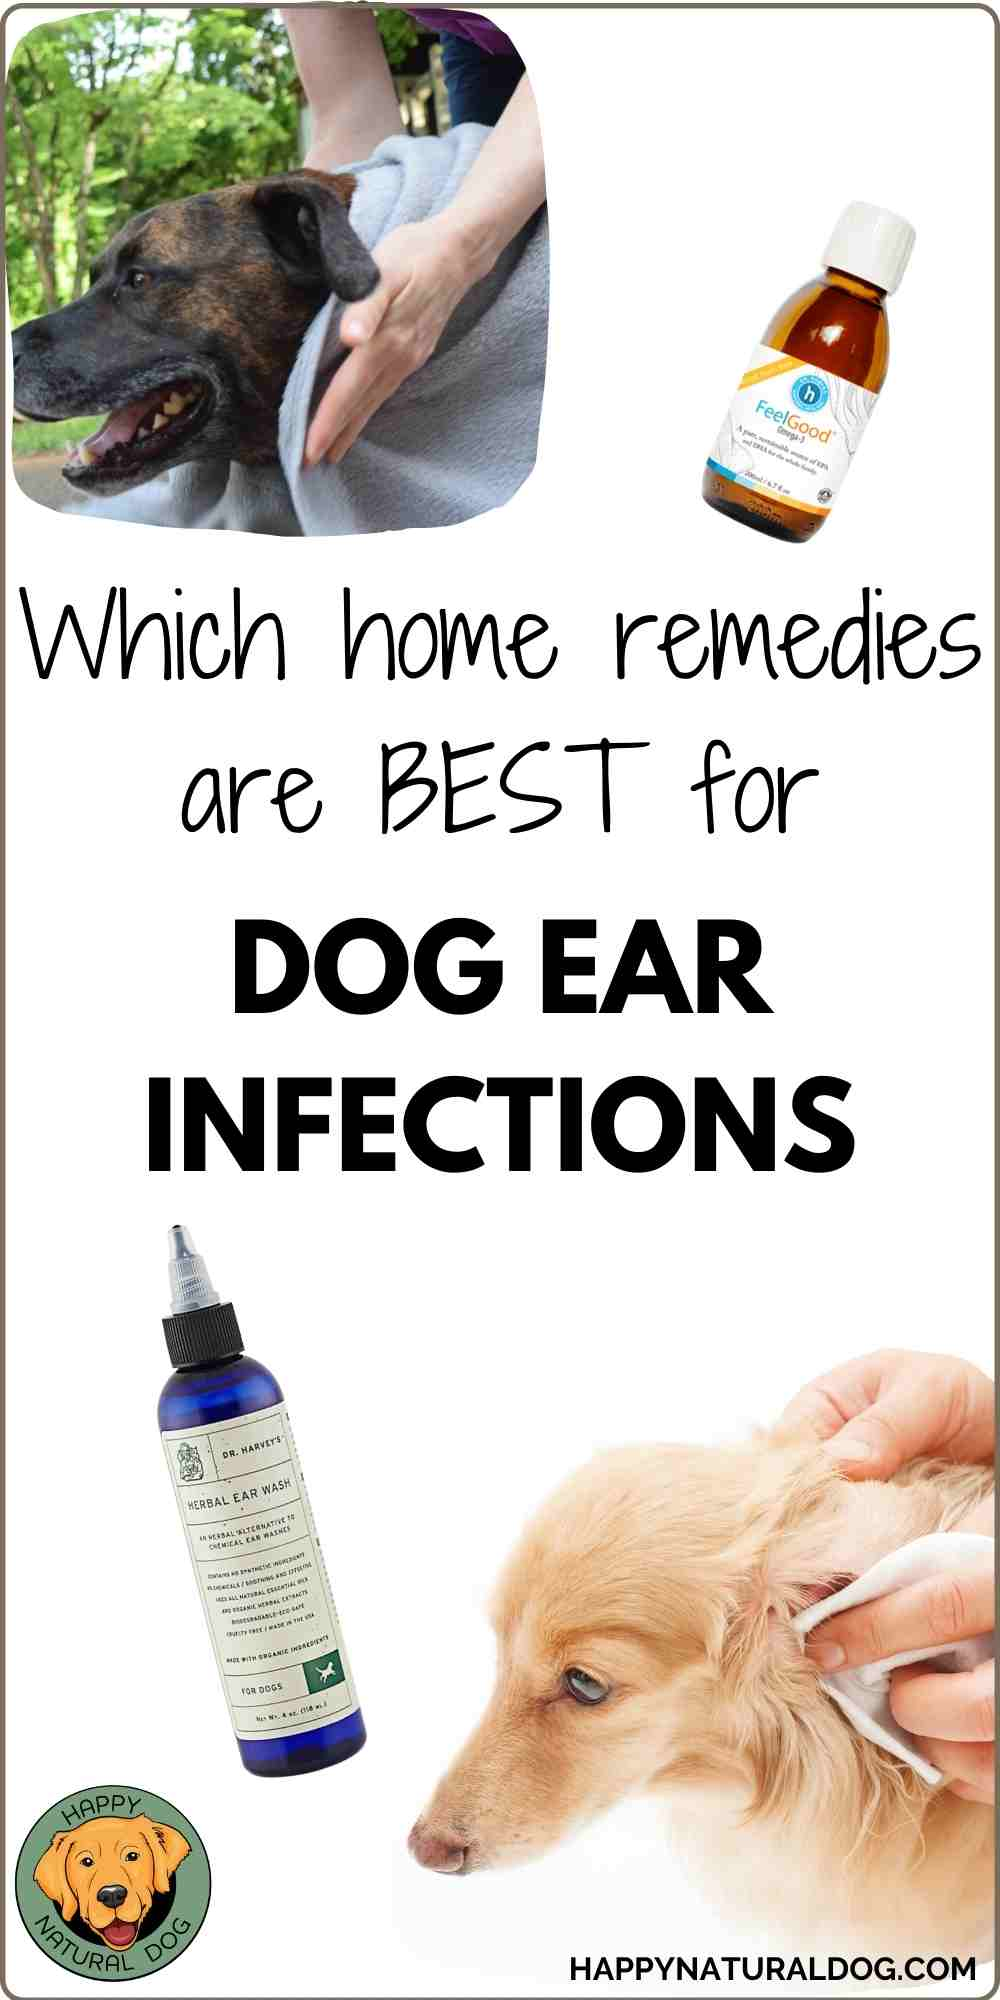 Home Remedies for Dog Ear Infections pin for PInterest